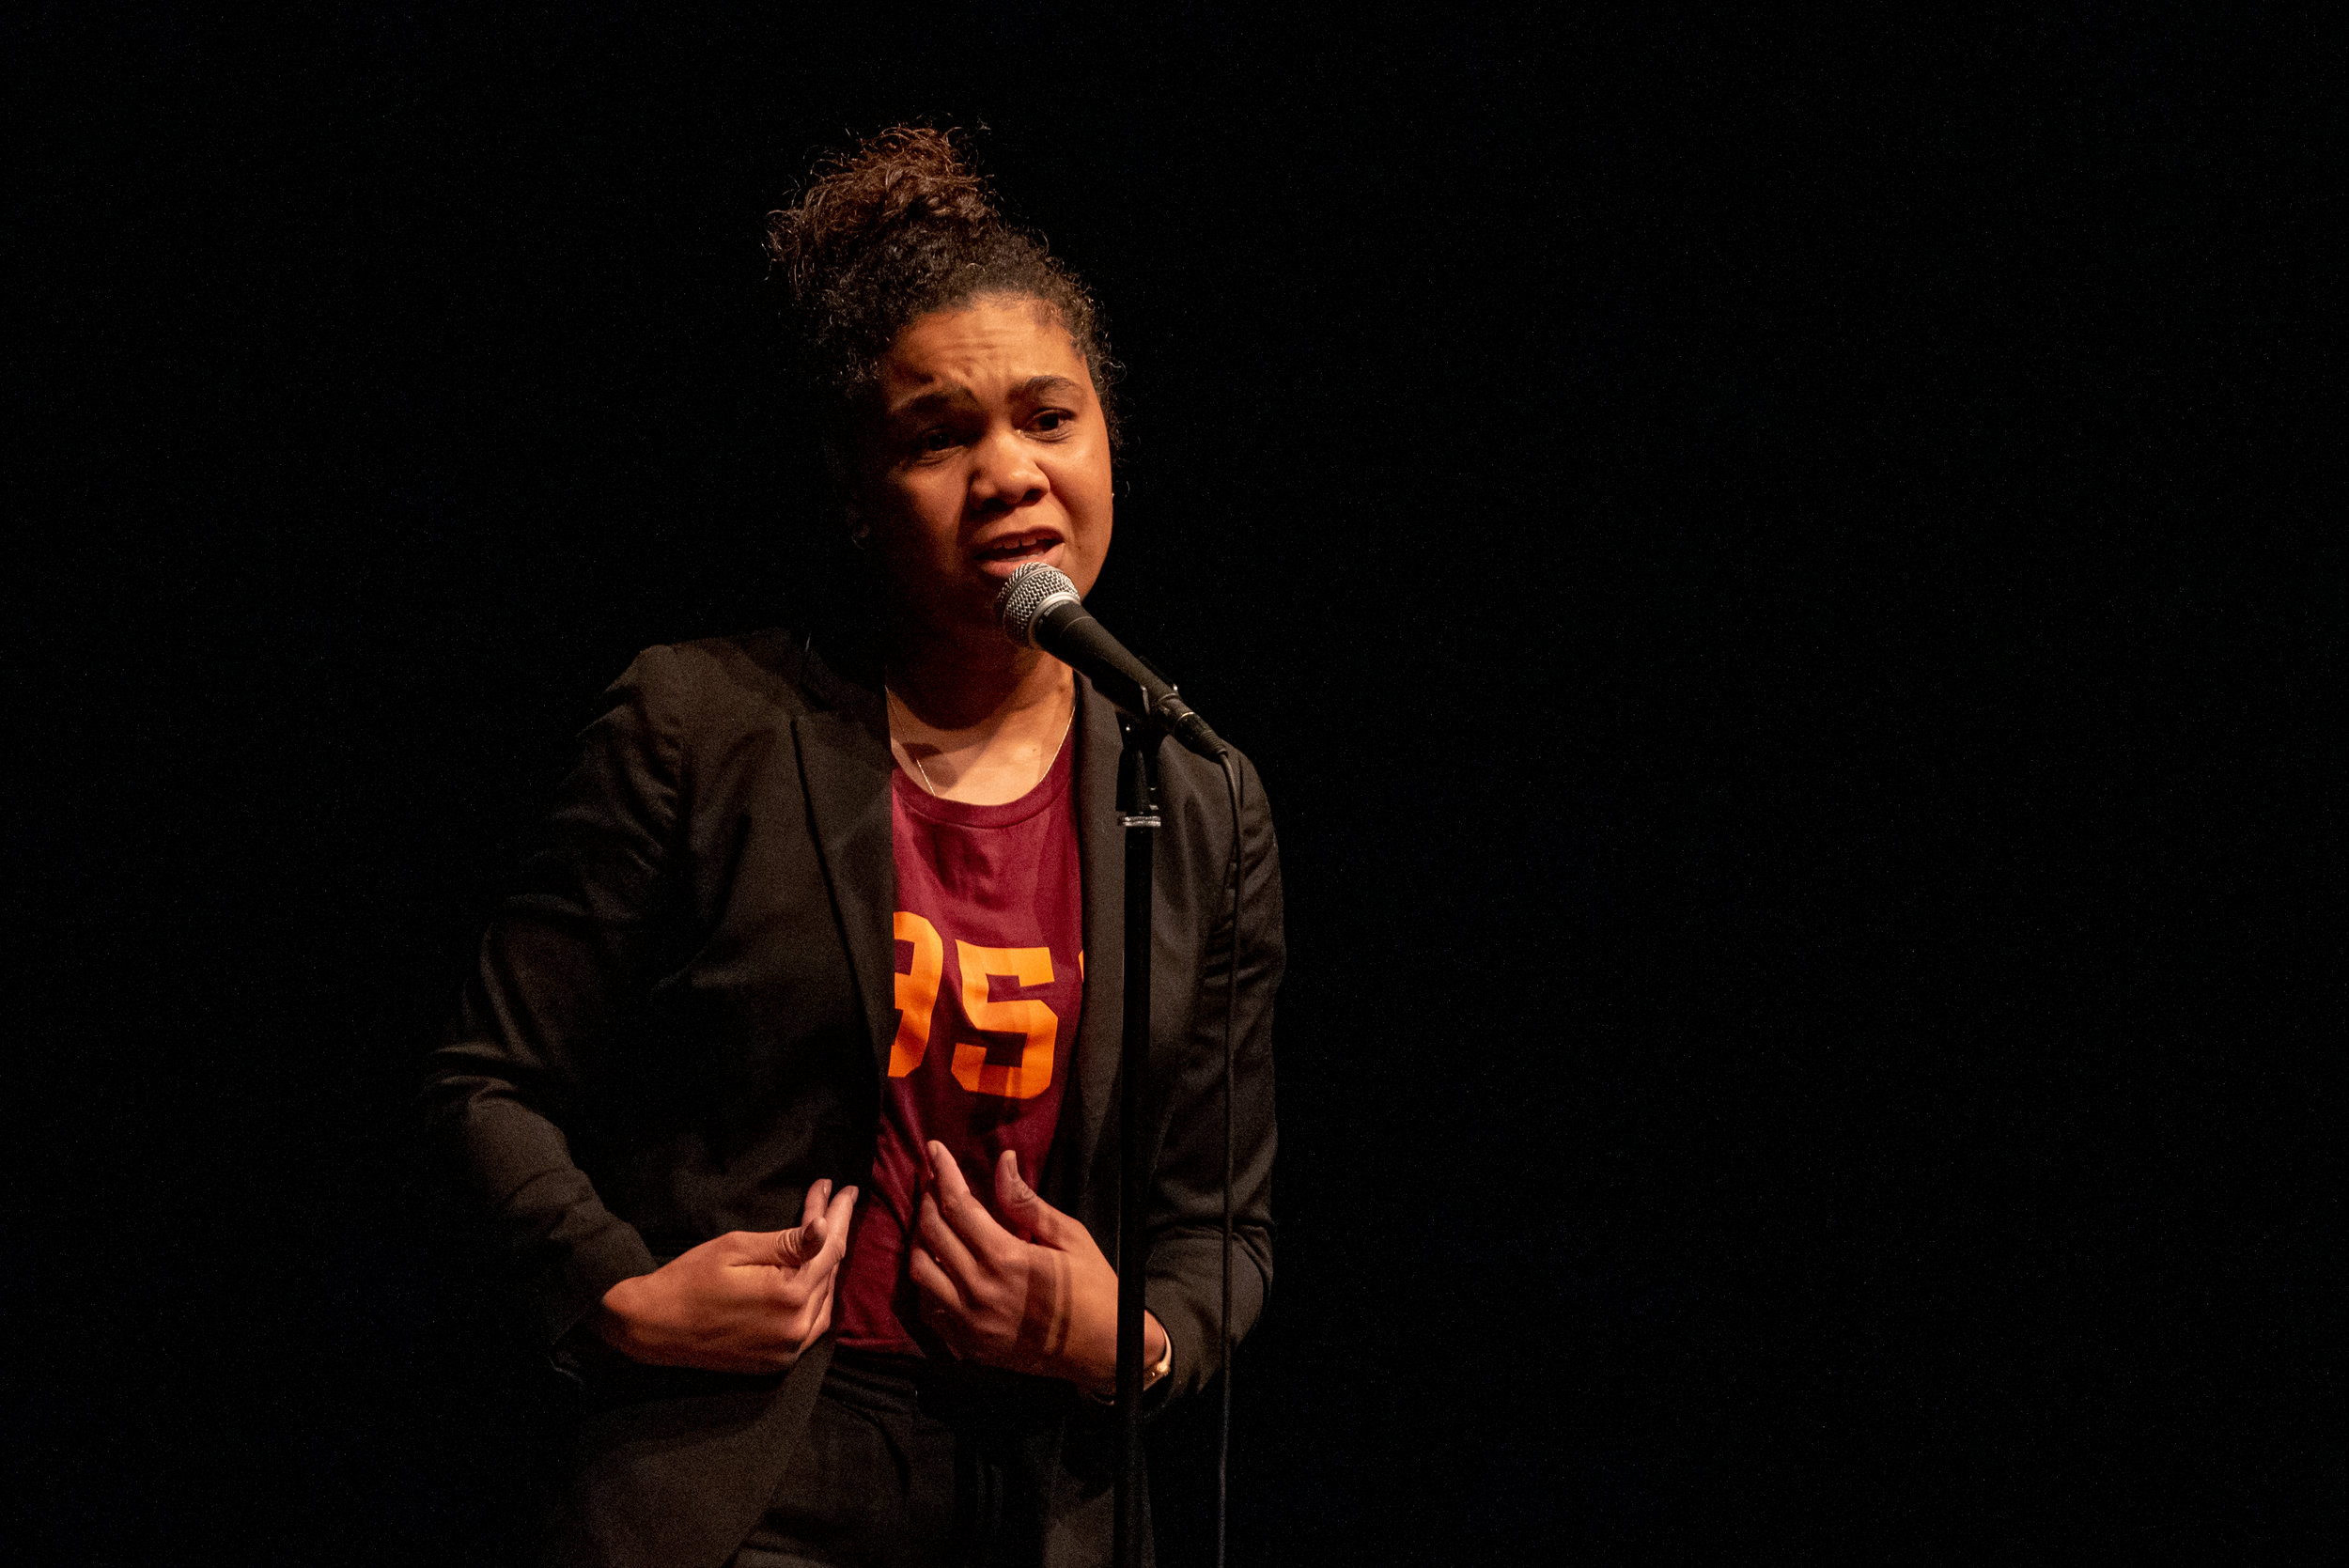 Chivonne Battle shares her story with us at a show sponsored by Virginia Tech in Blacksburg, VA in March 2019. Photo by Courtney Tolley.